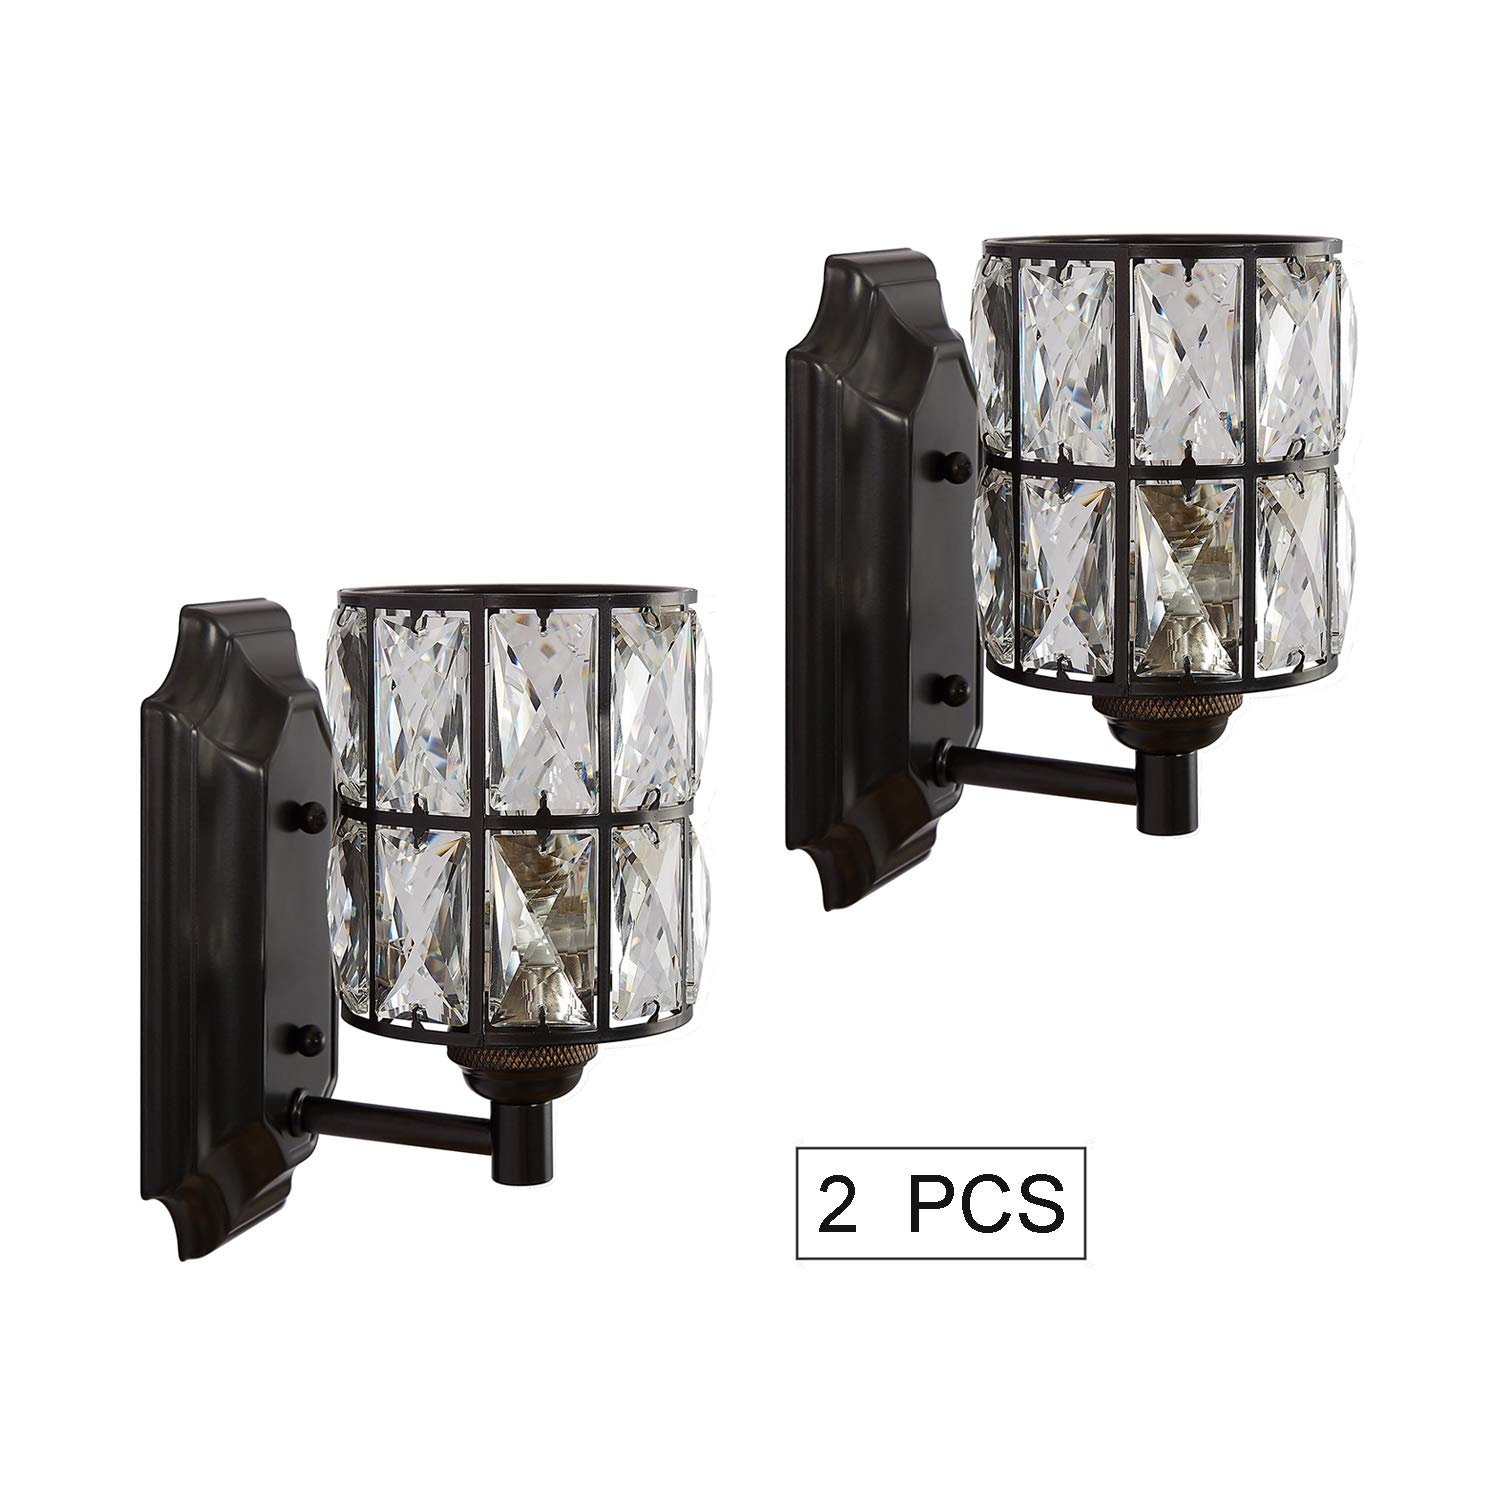 Doraimi 1 Light Prism Crystal Wall Sconce Lighting with Painting Black Finish Set of 2 , Modern Wall Light Fixture with Crystal Plate Shade for Bath Room, Bed Room. LED Bulb not Include